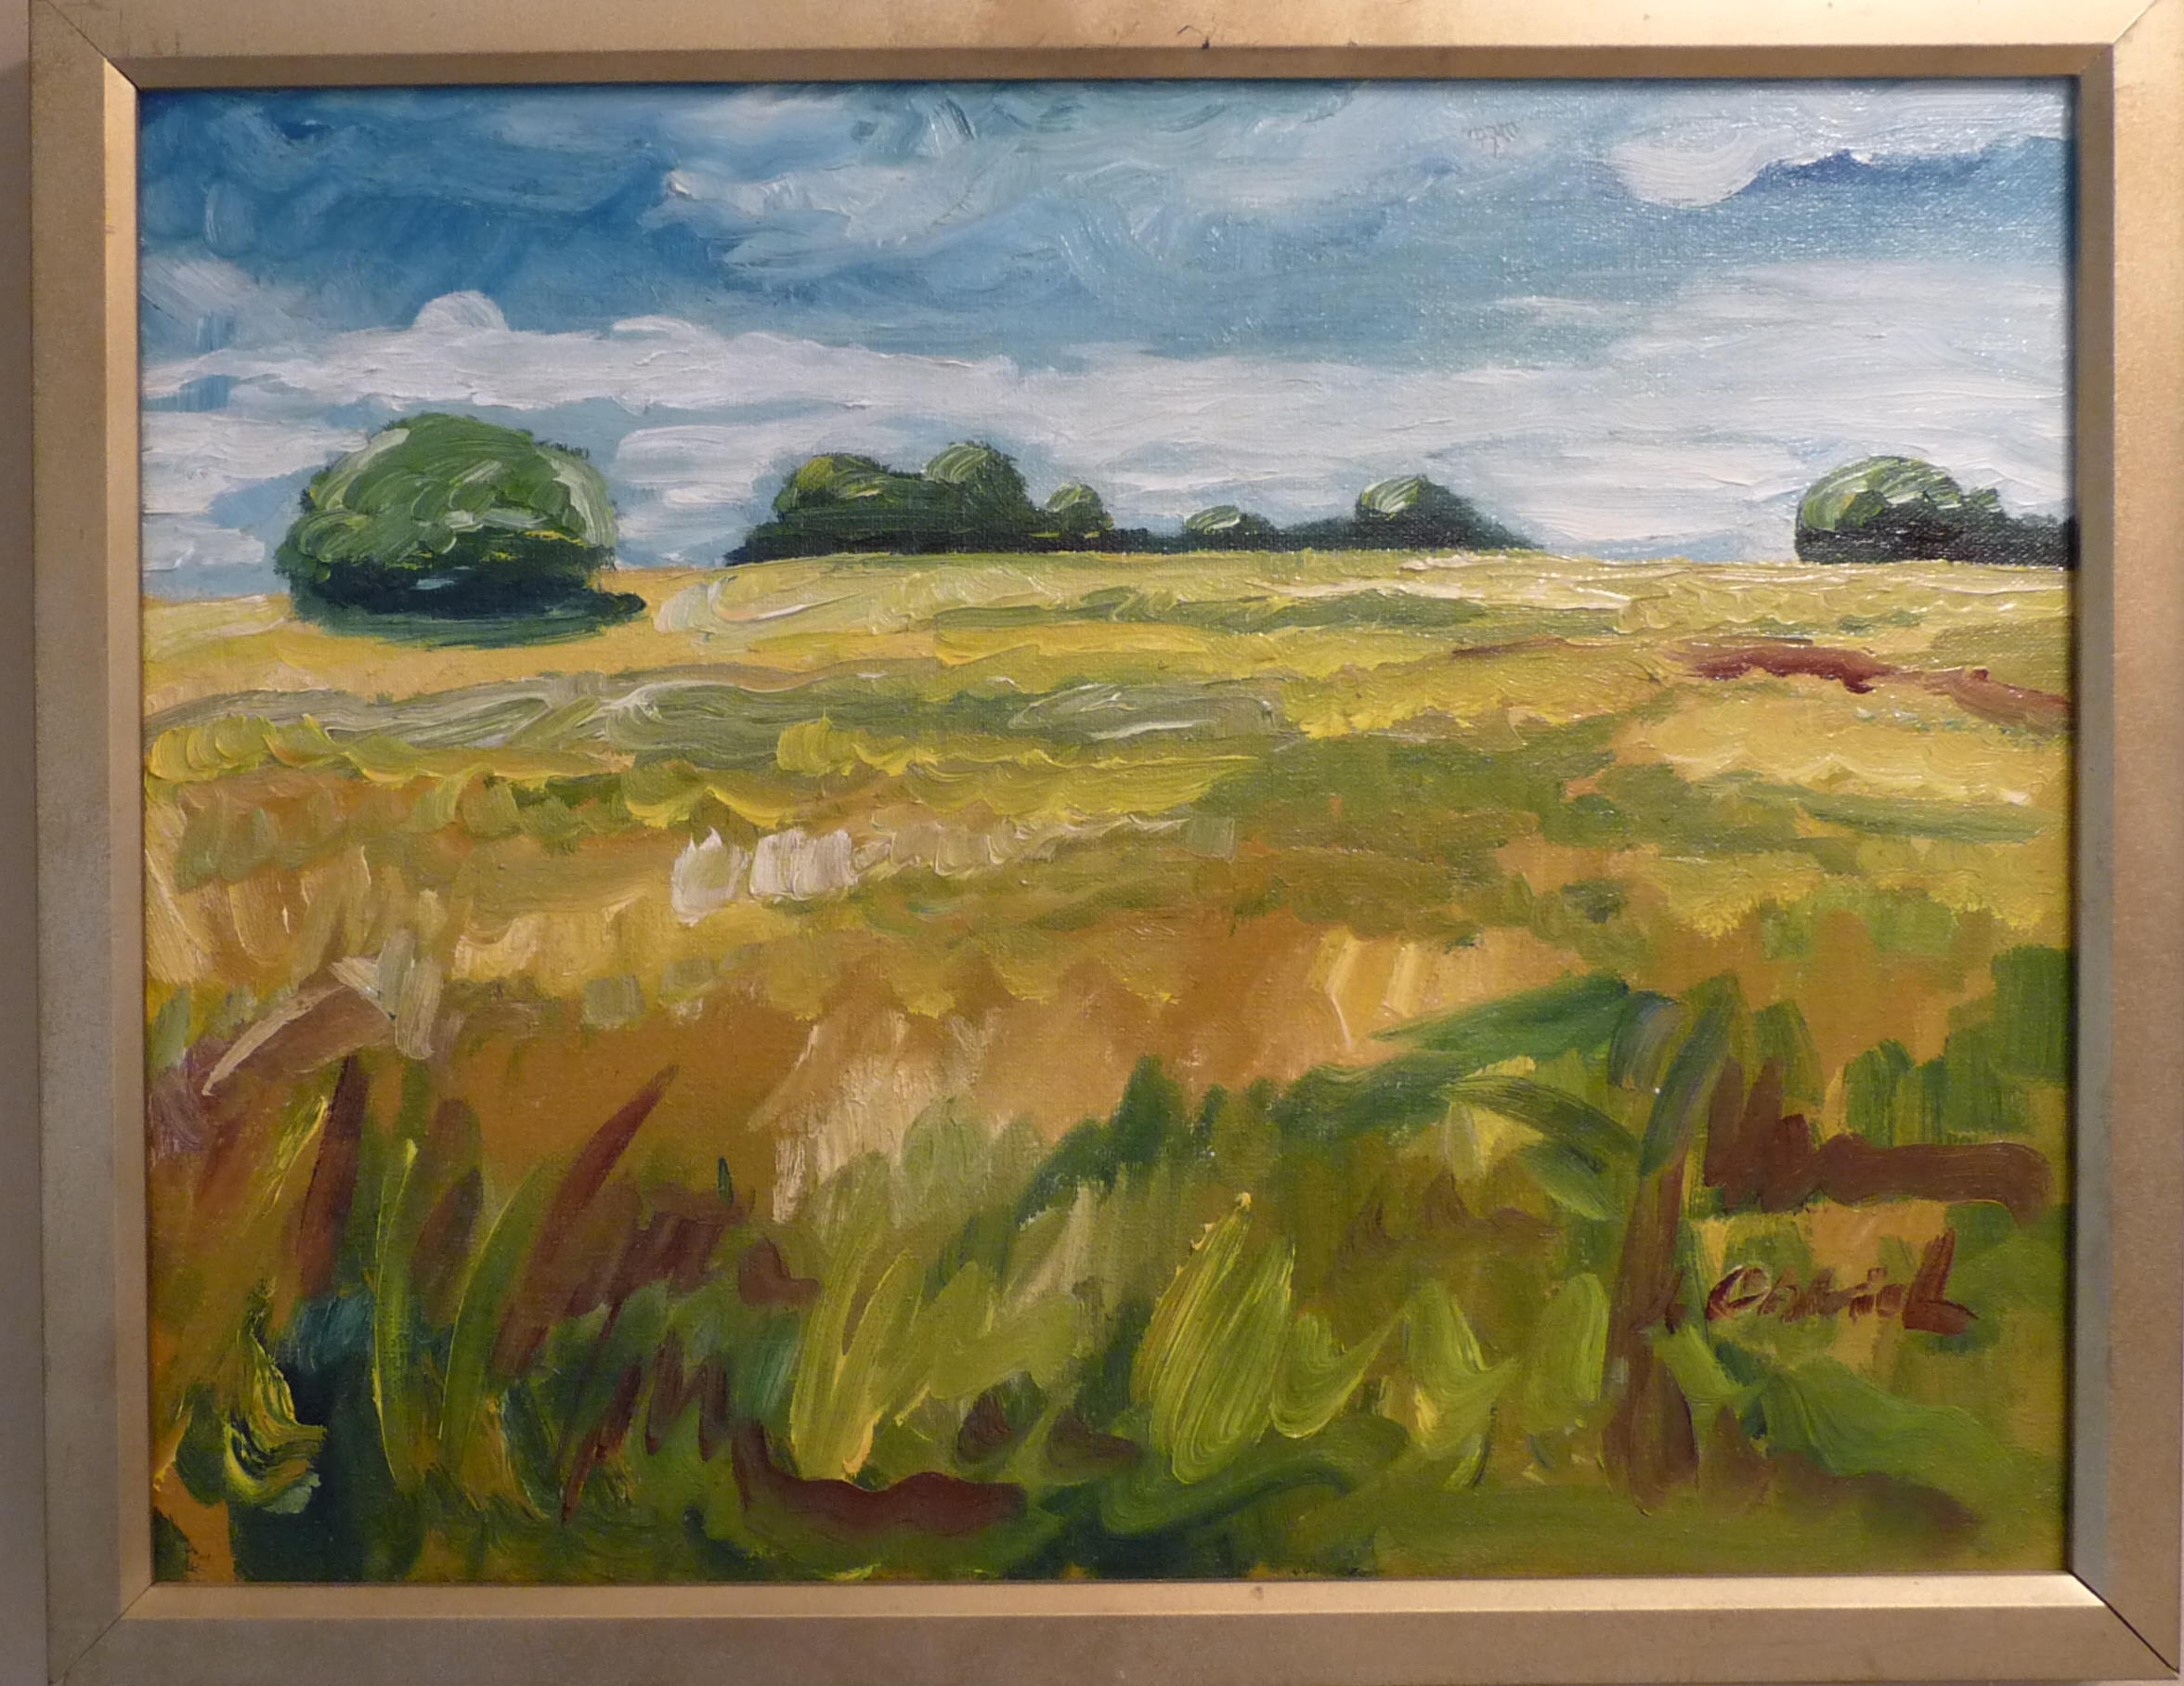 'PRAIRIE SHADE' 16X20 OIL PAINTING